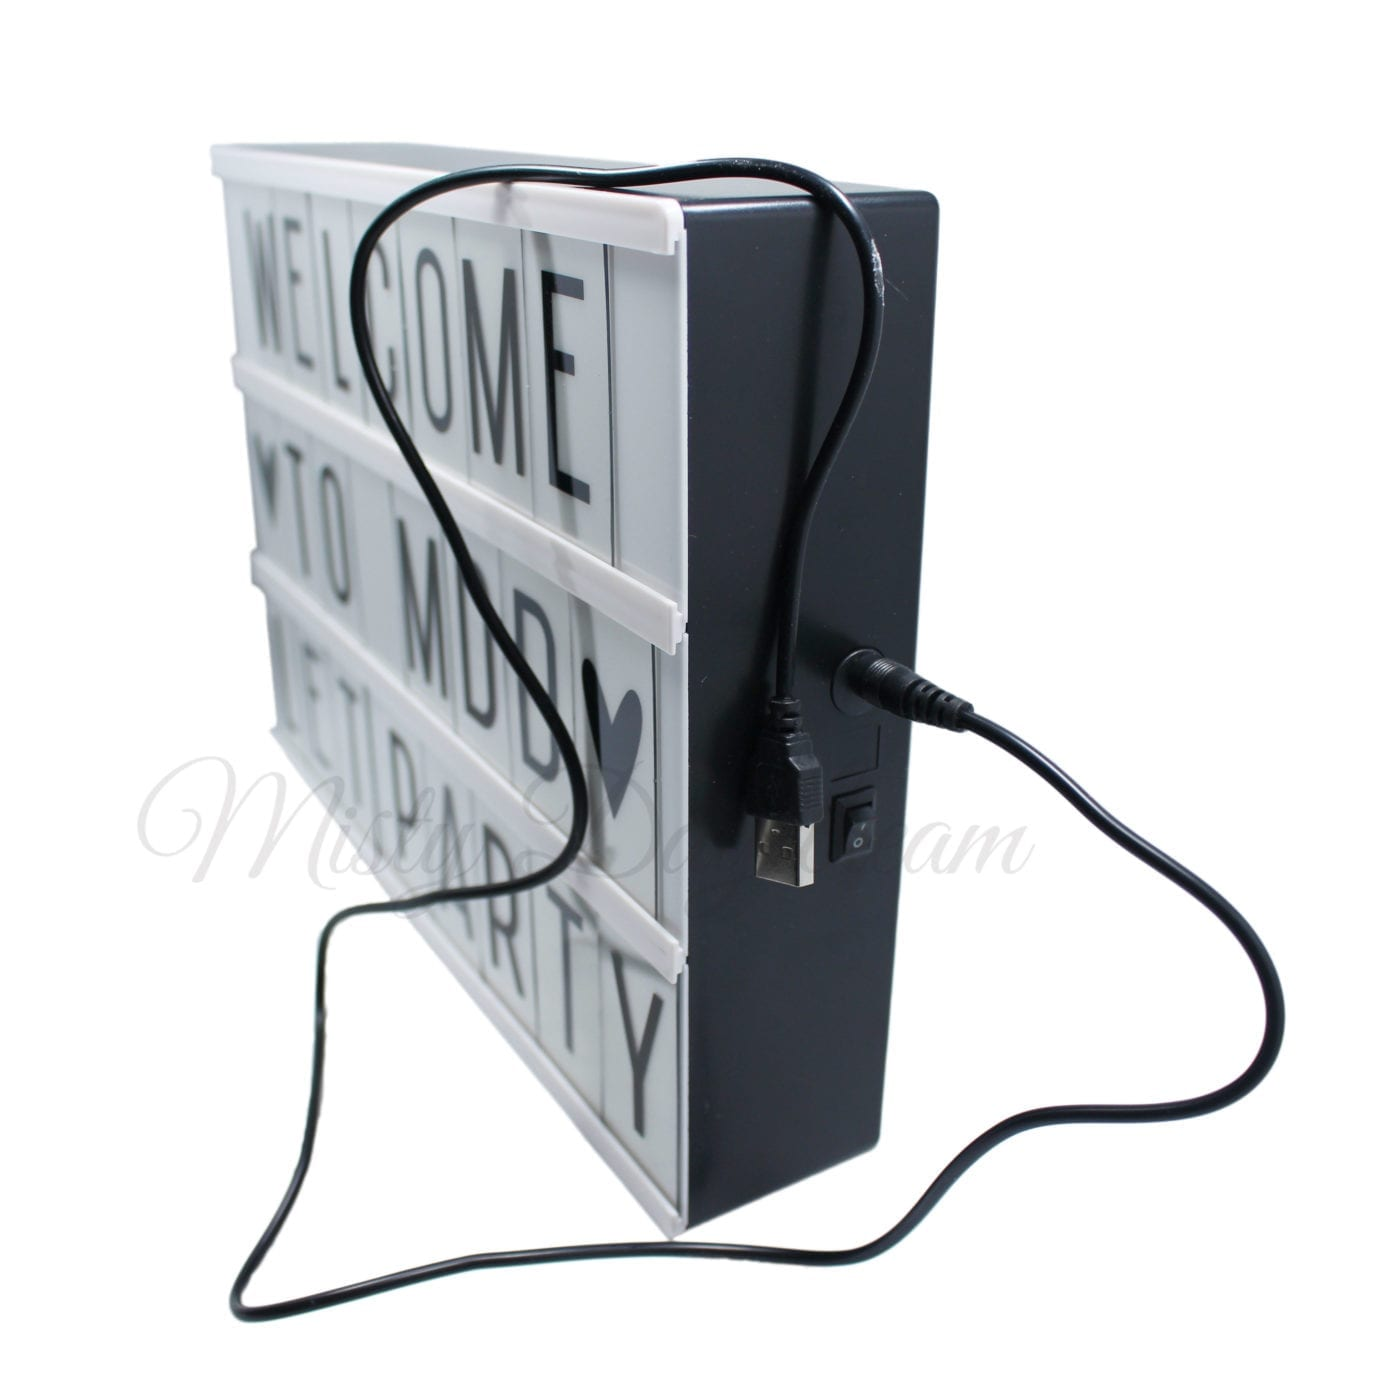 it own cinema box pin pinterest light message up your lighting spell